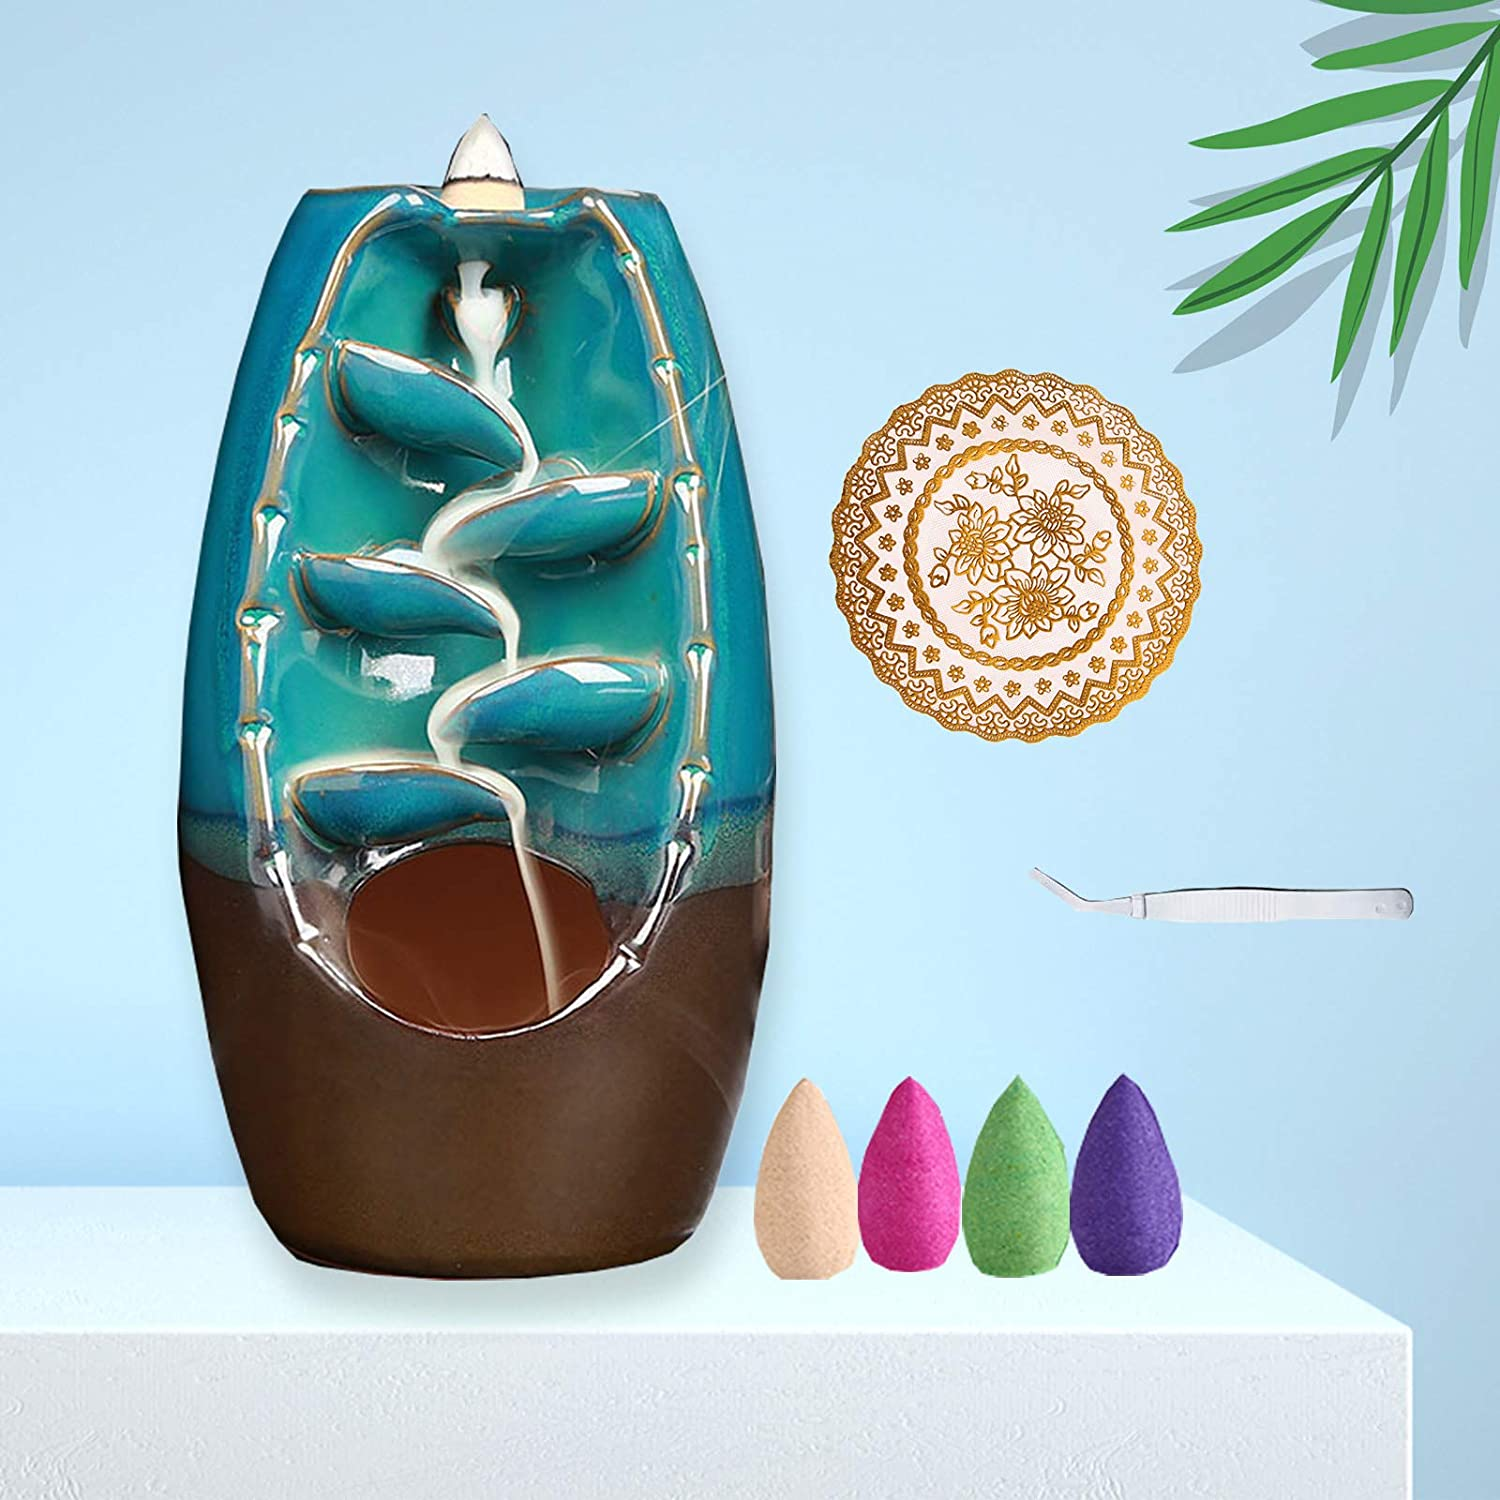 EncountME Ceramic Backflow Incense Holder Waterfall Incense Burner with 80 backflow Incense Cones & Incense Burner mat and Tweezers Waterfall Incense Holder Aromatherapy Ornament Home Decor Indoor